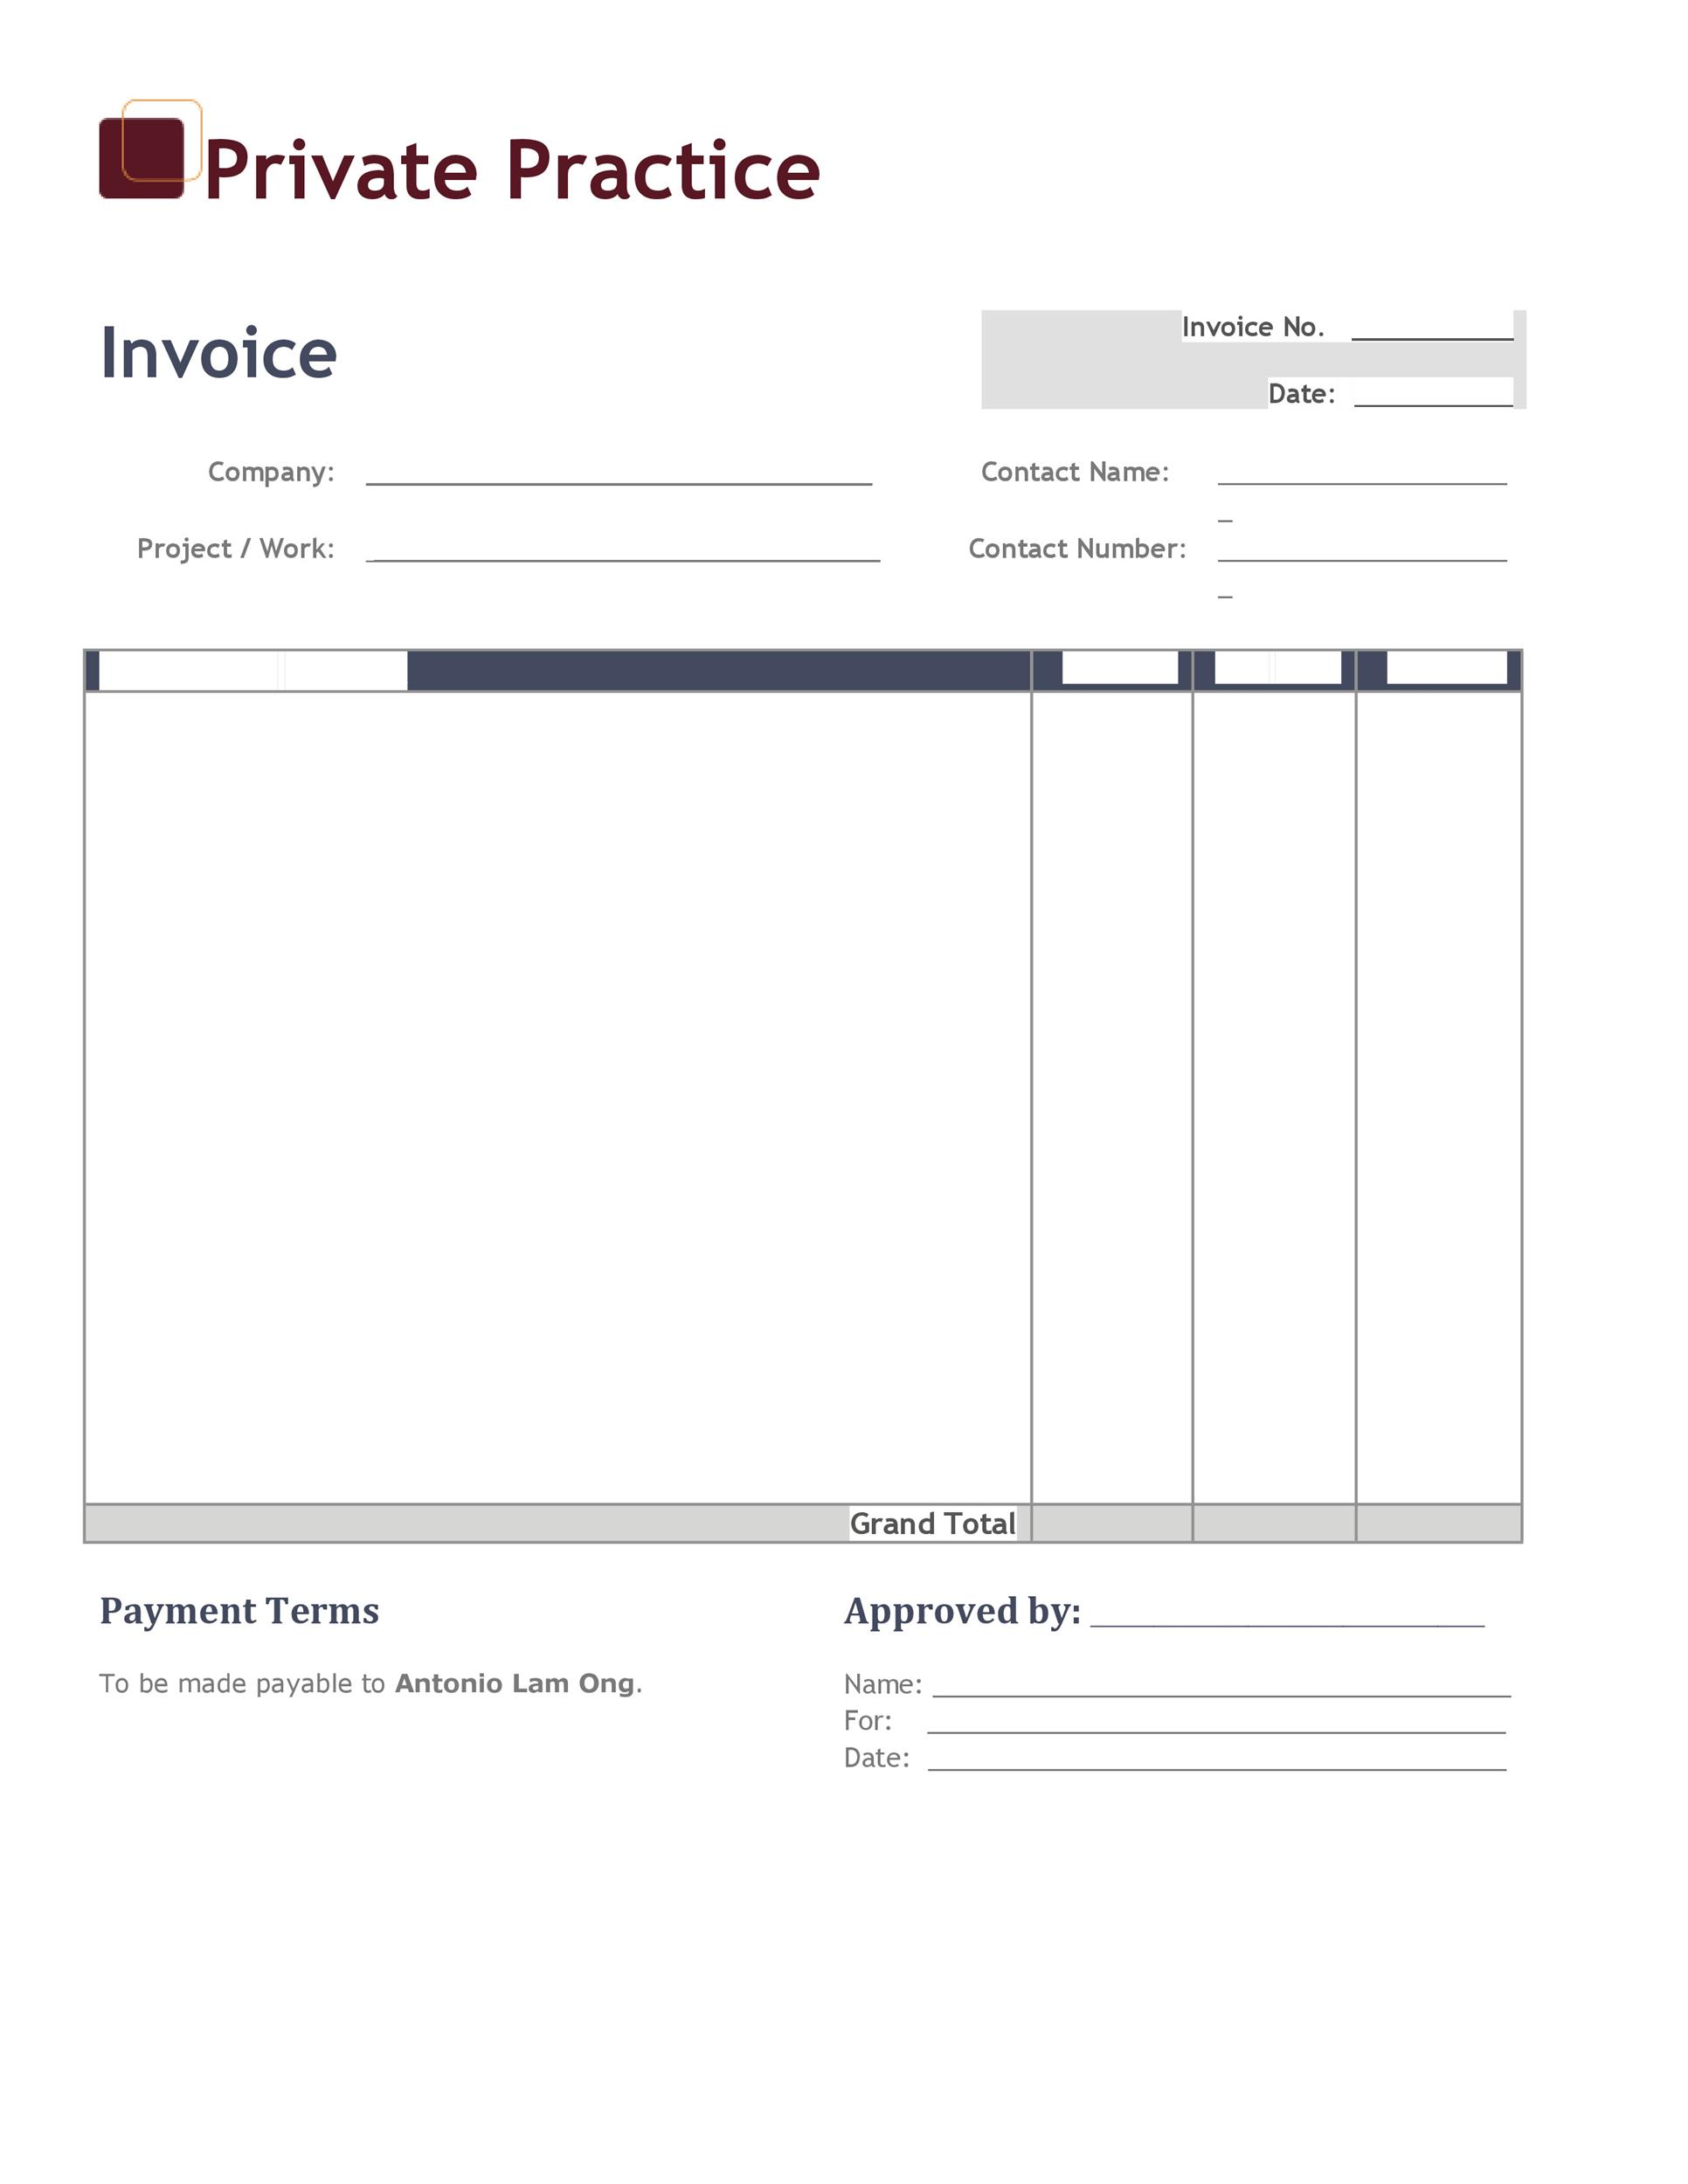 Printable Invoice Template 02  Company Invoices